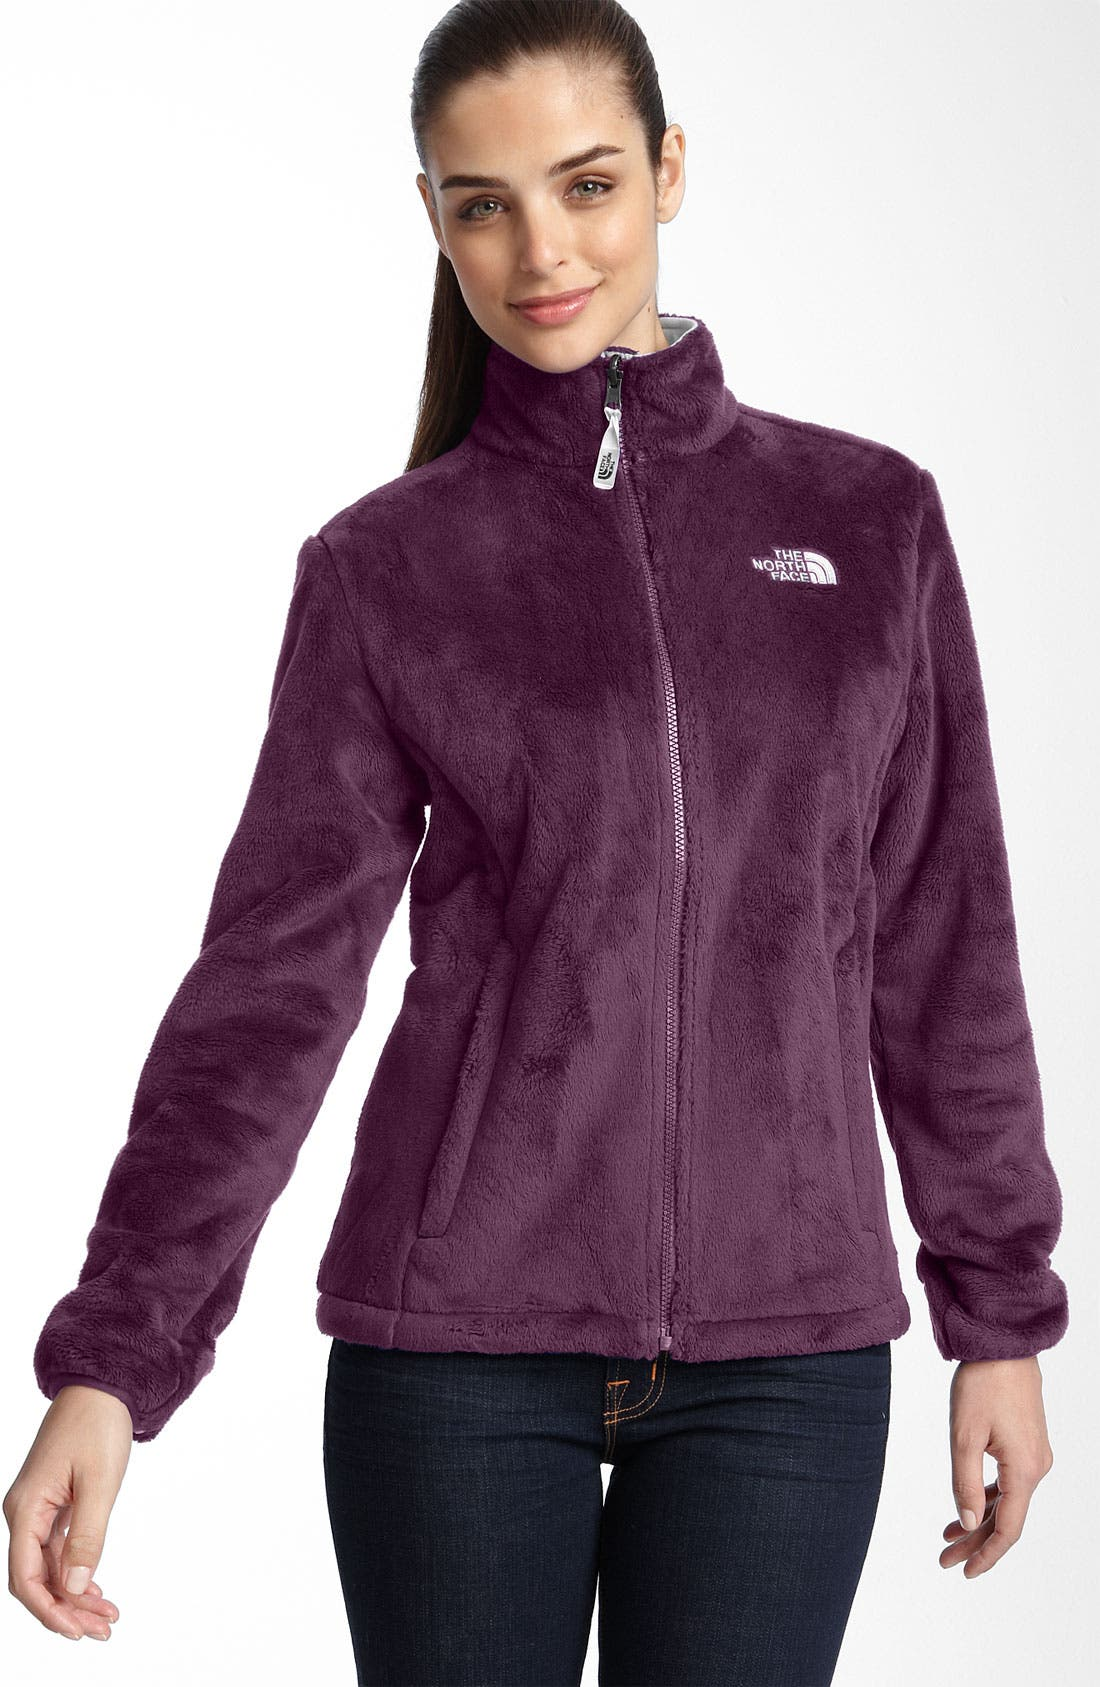 north face osito jacket